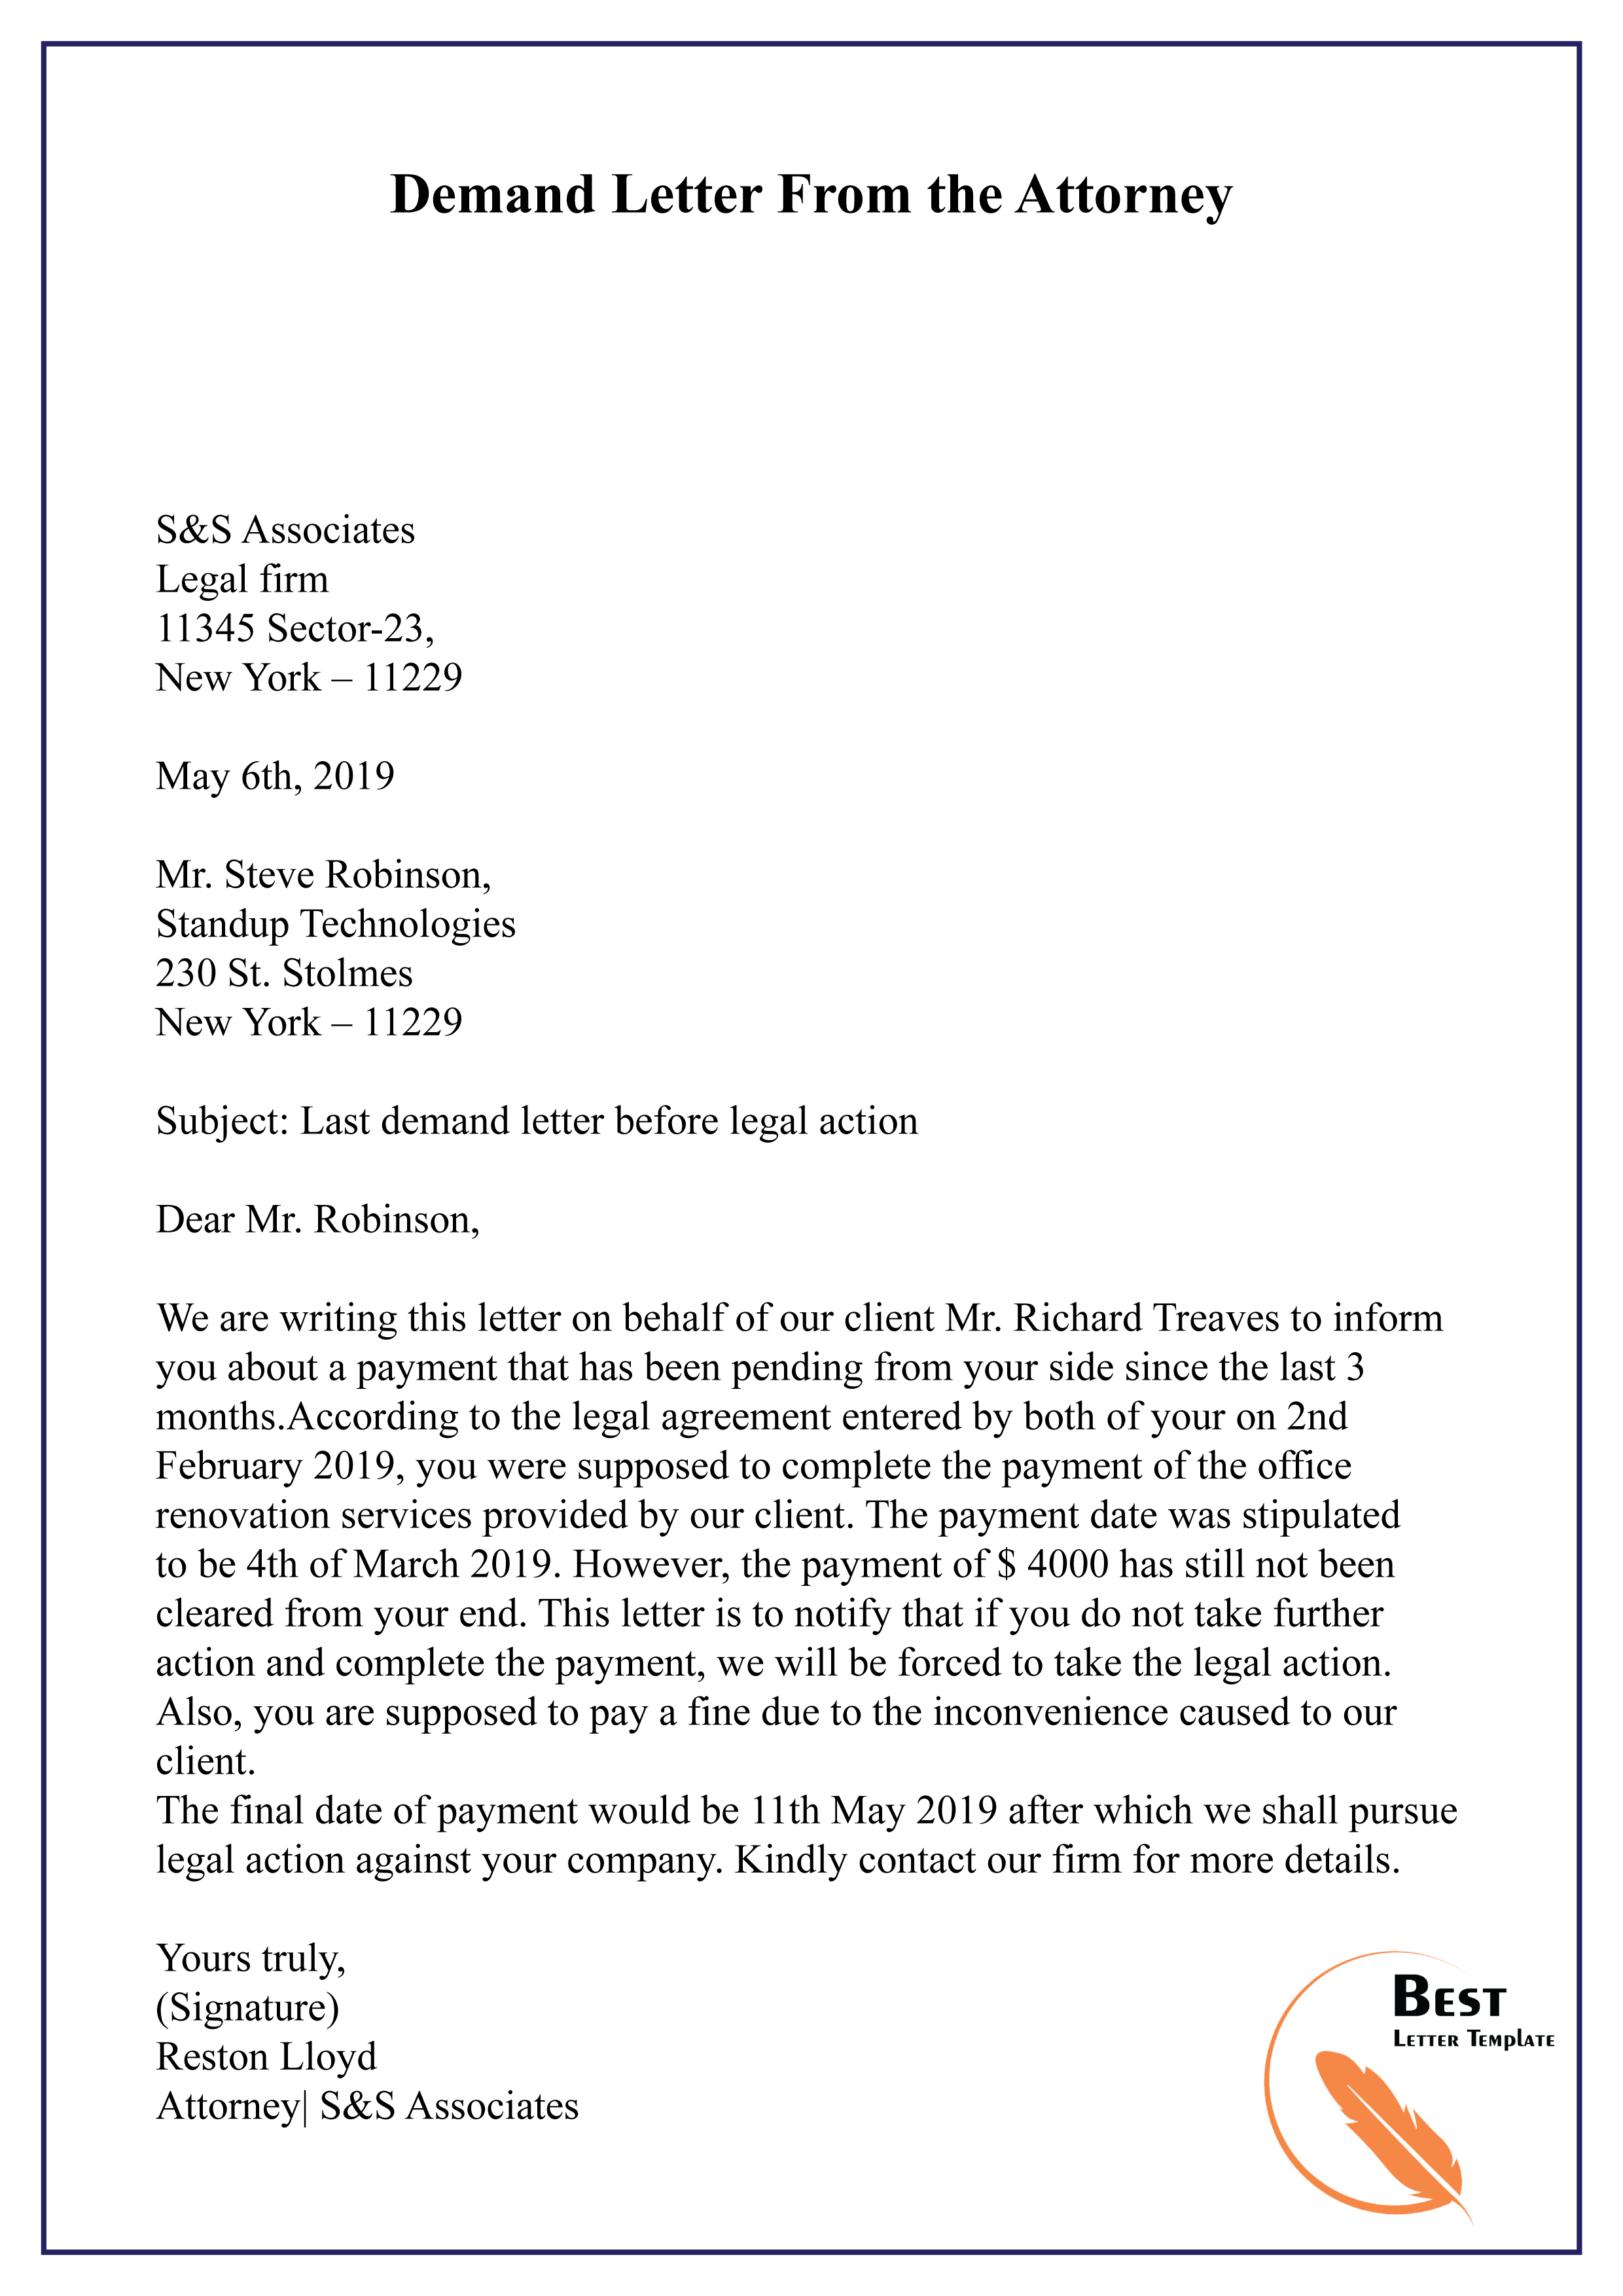 Demand Letter From Attorney from bestlettertemplate.com